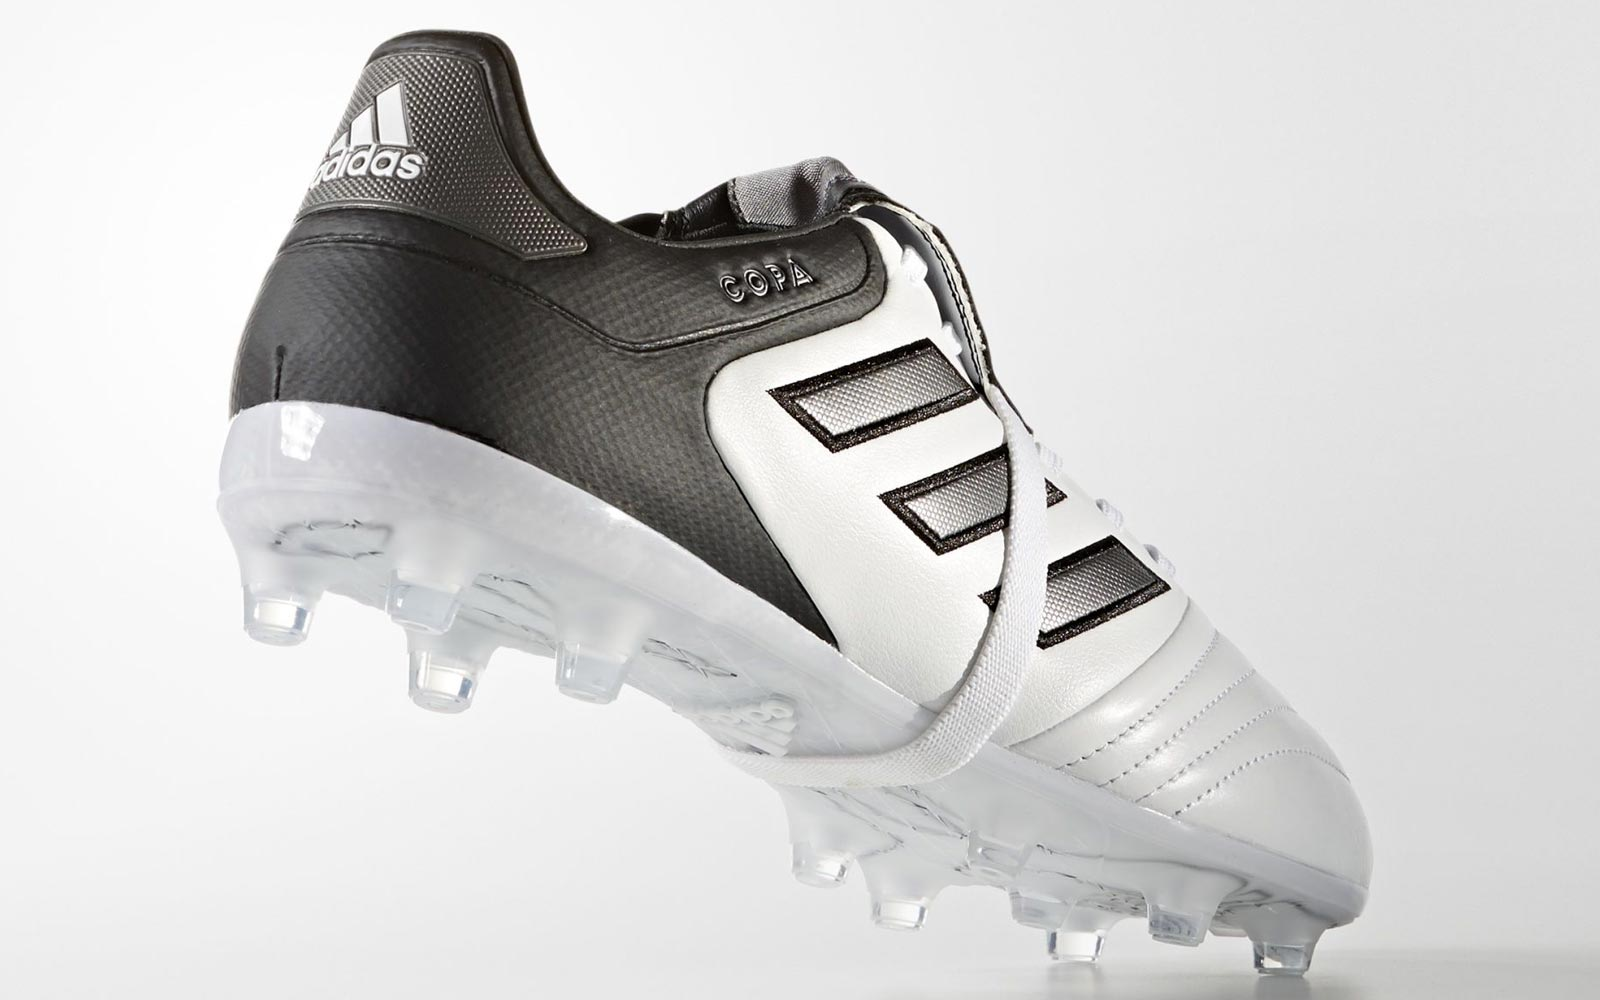 new concept ab807 8a632 ... fg 39 1 3 core black ftwr white flash orange bb27c cd754 where to buy  share your thoughts on the adidas copa gloro 17.2 in the comments.